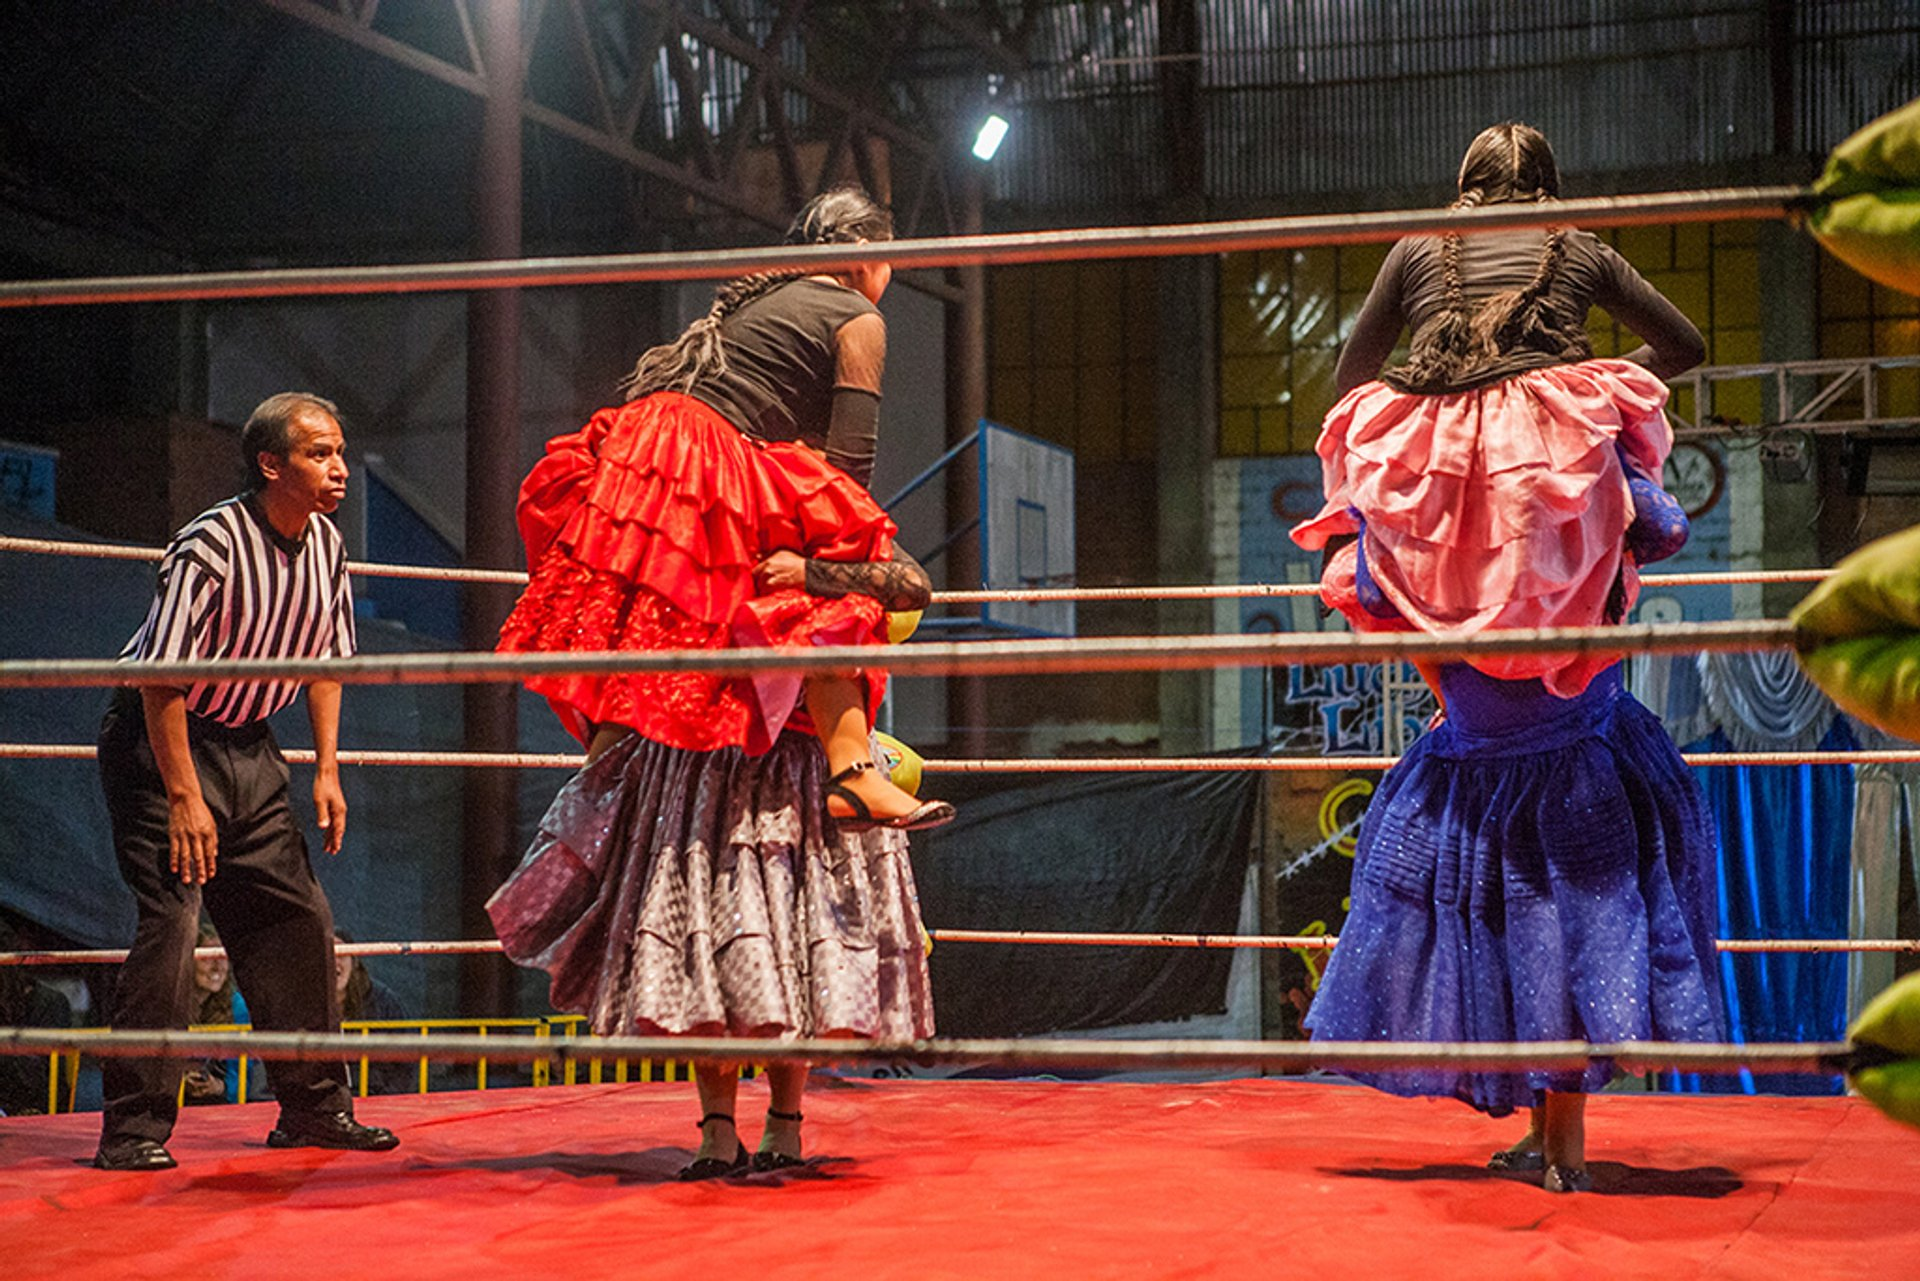 Cholita Wrestling in Bolivia - Best Season 2020